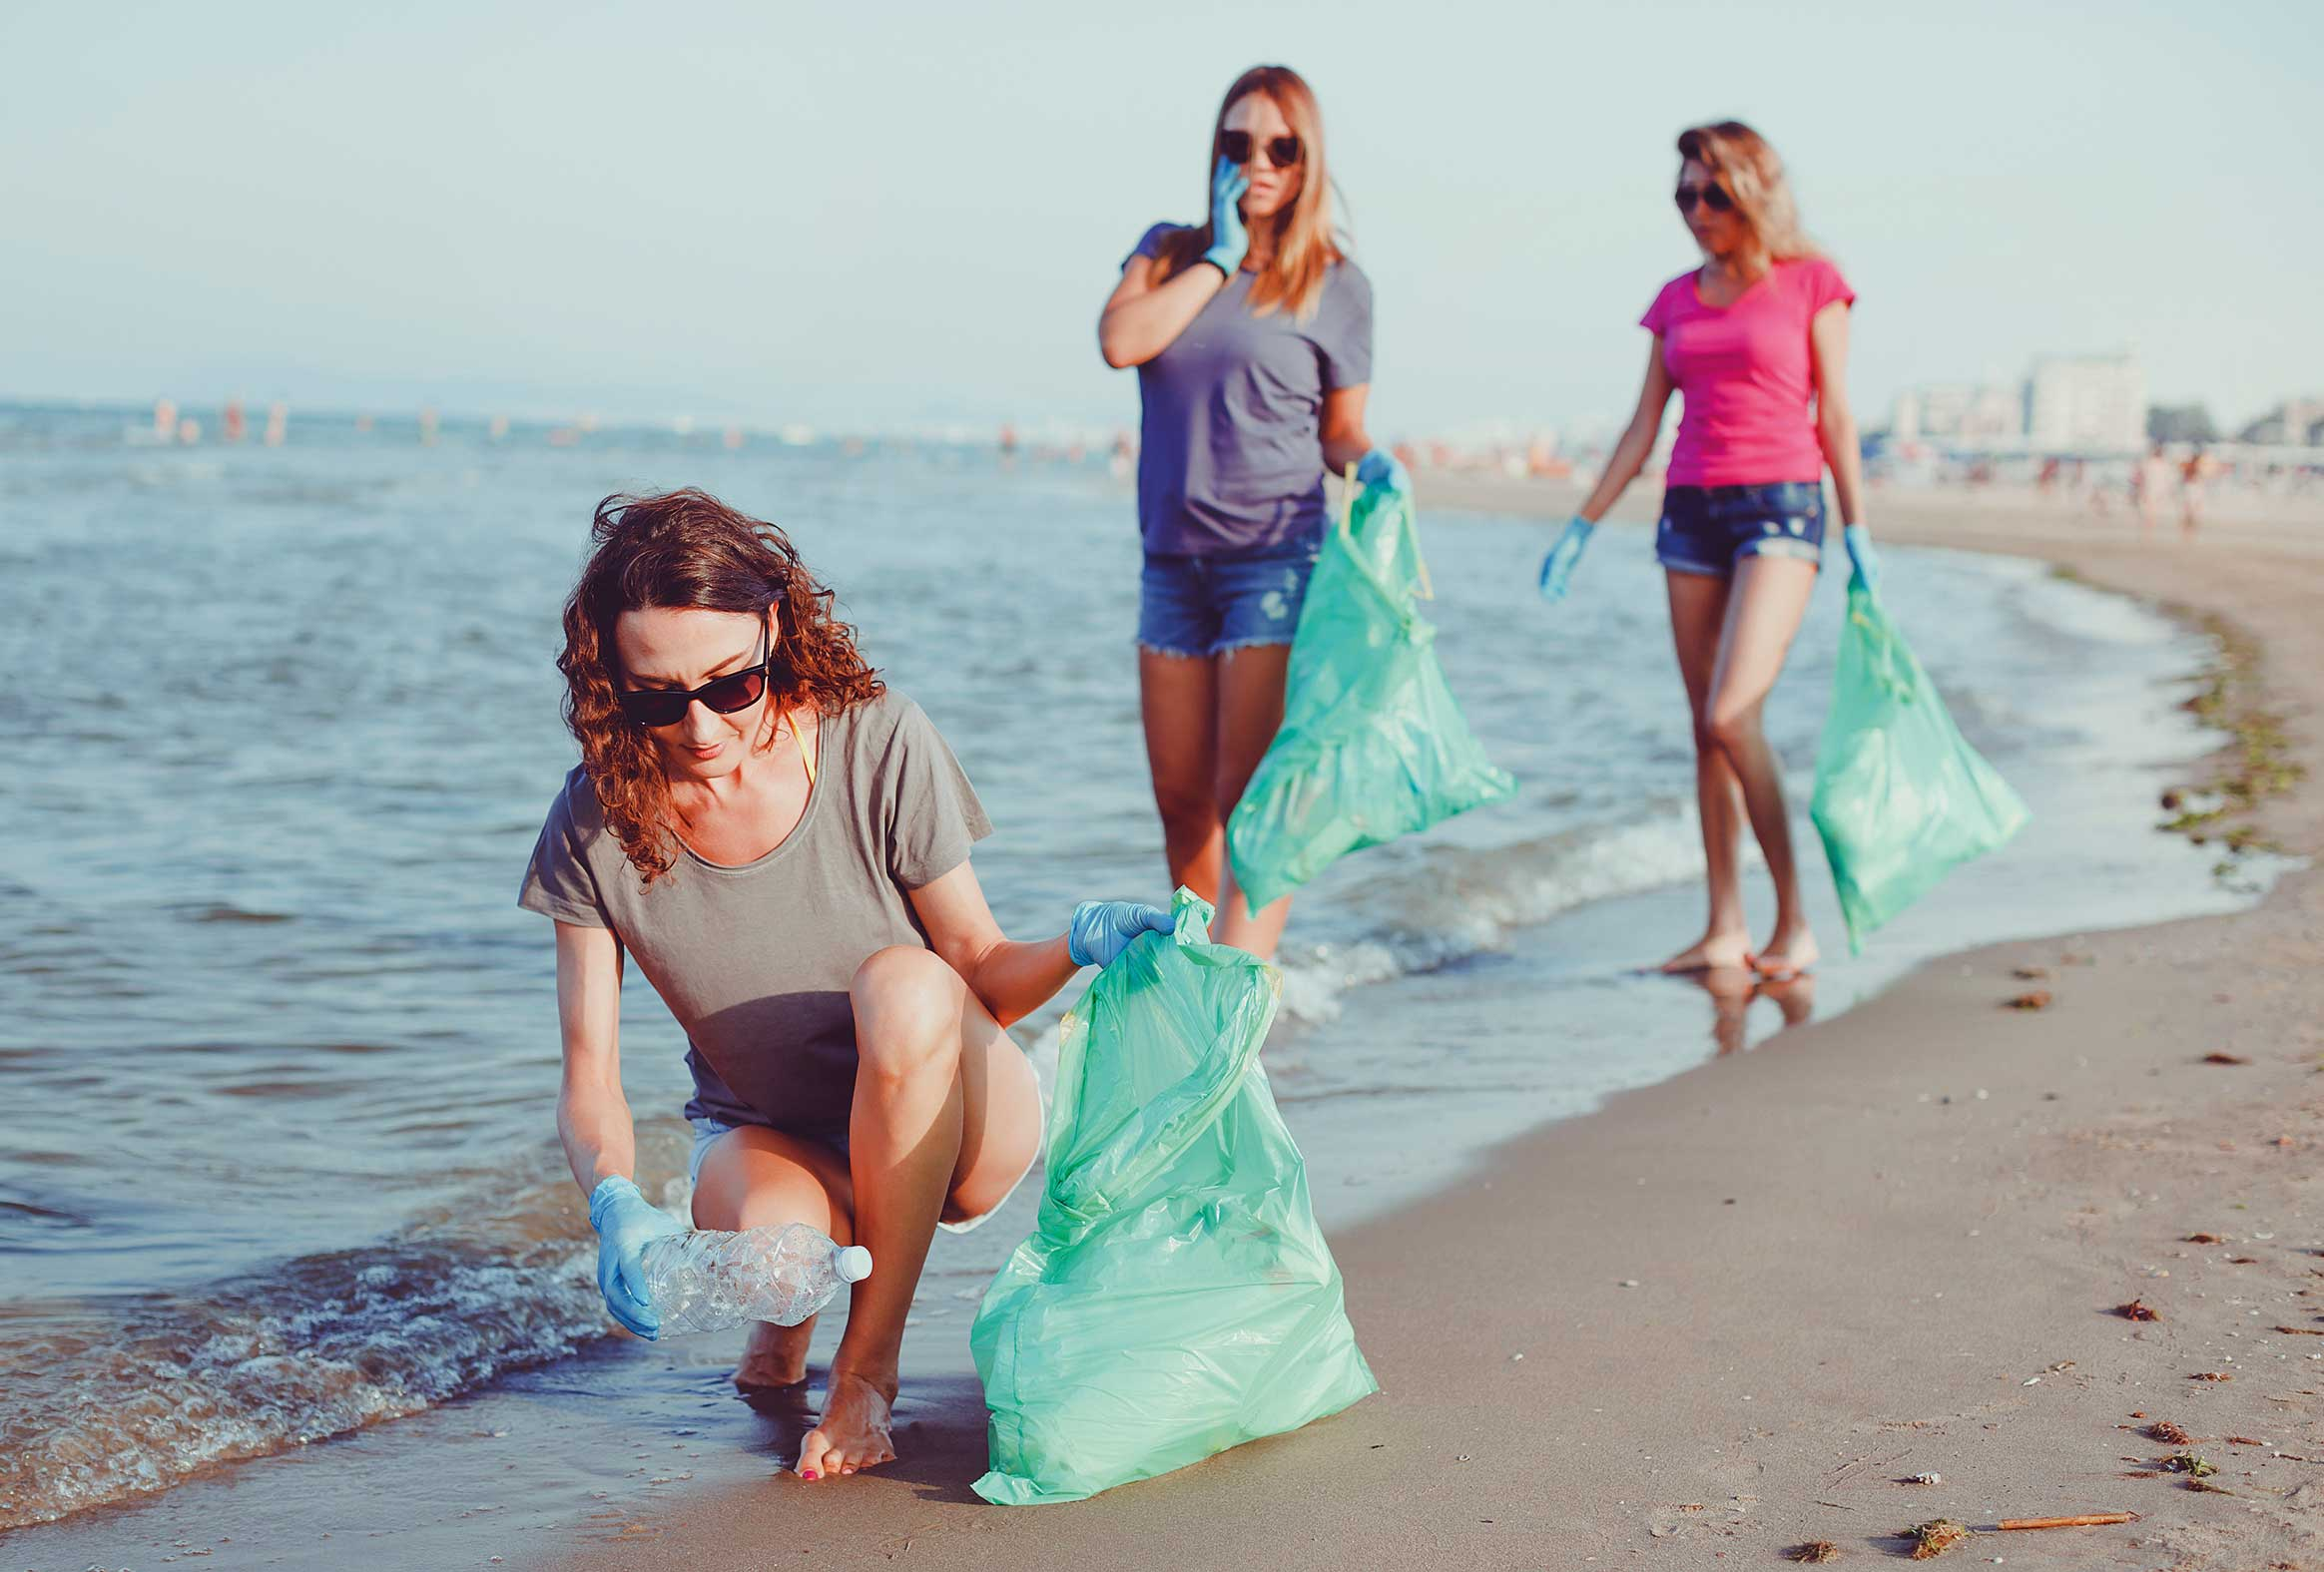 Eco-conscious travellers are keen to join beach clean-up drives